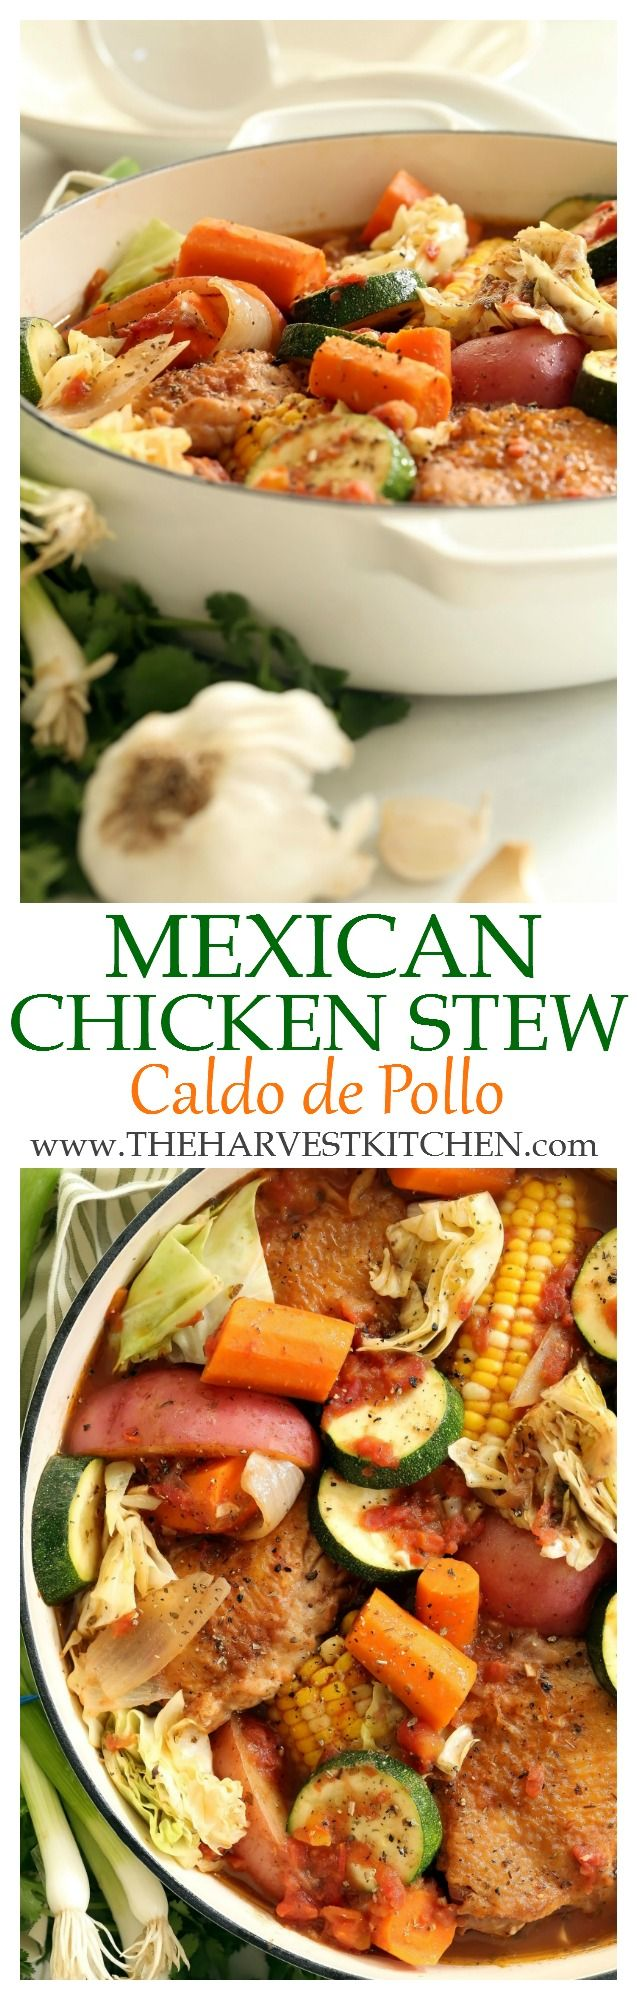 Something really delicious happens when all of these ingredients for this Mexican Chicken Stew simmer in a pot together!  This is a family-friendly chicken stew recipe that's rich and flavorful and comes together in just about an hour.   Dutch oven recipes     one pot chicken recipes   easy chicken stew recipes     healthy recipes  